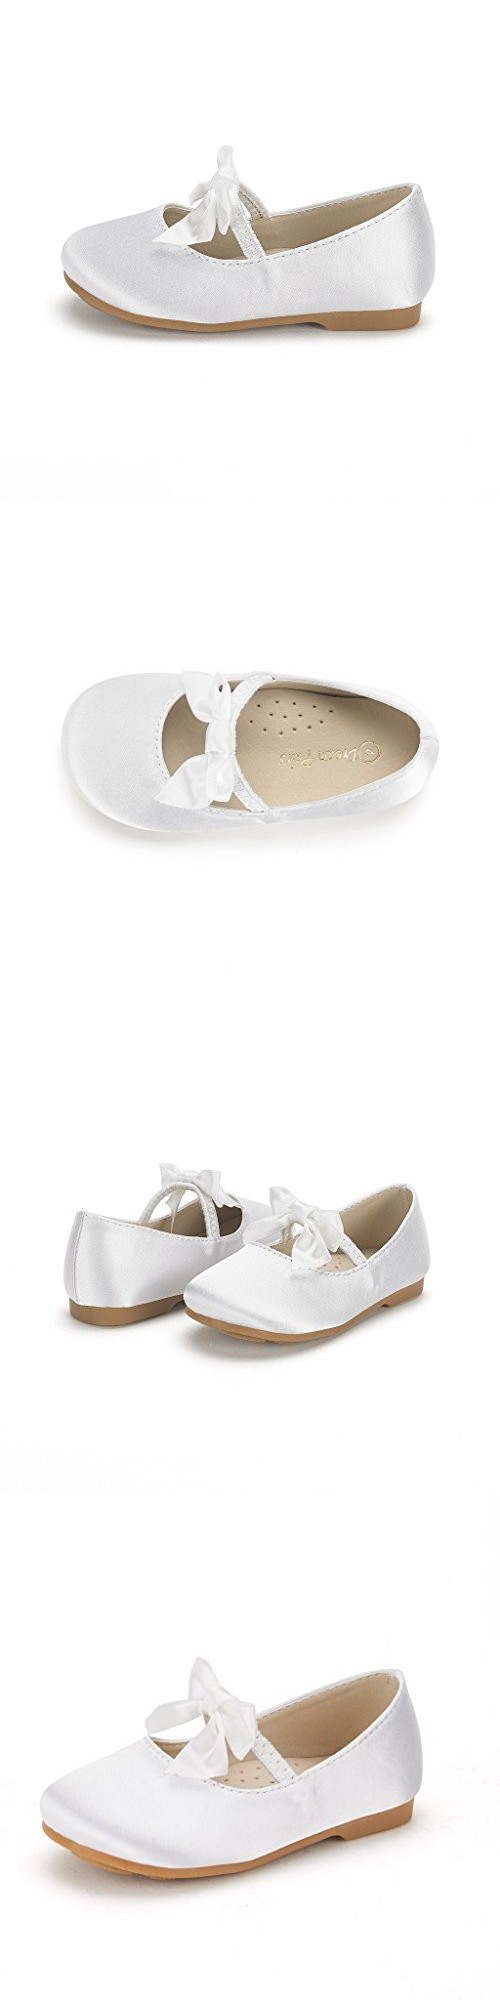 Dream Pairs SOPHIA-22 Adorables Mary Jane Front Bow Elastic Strap Ballerina Flat Toddler New WHITE SIZE 5